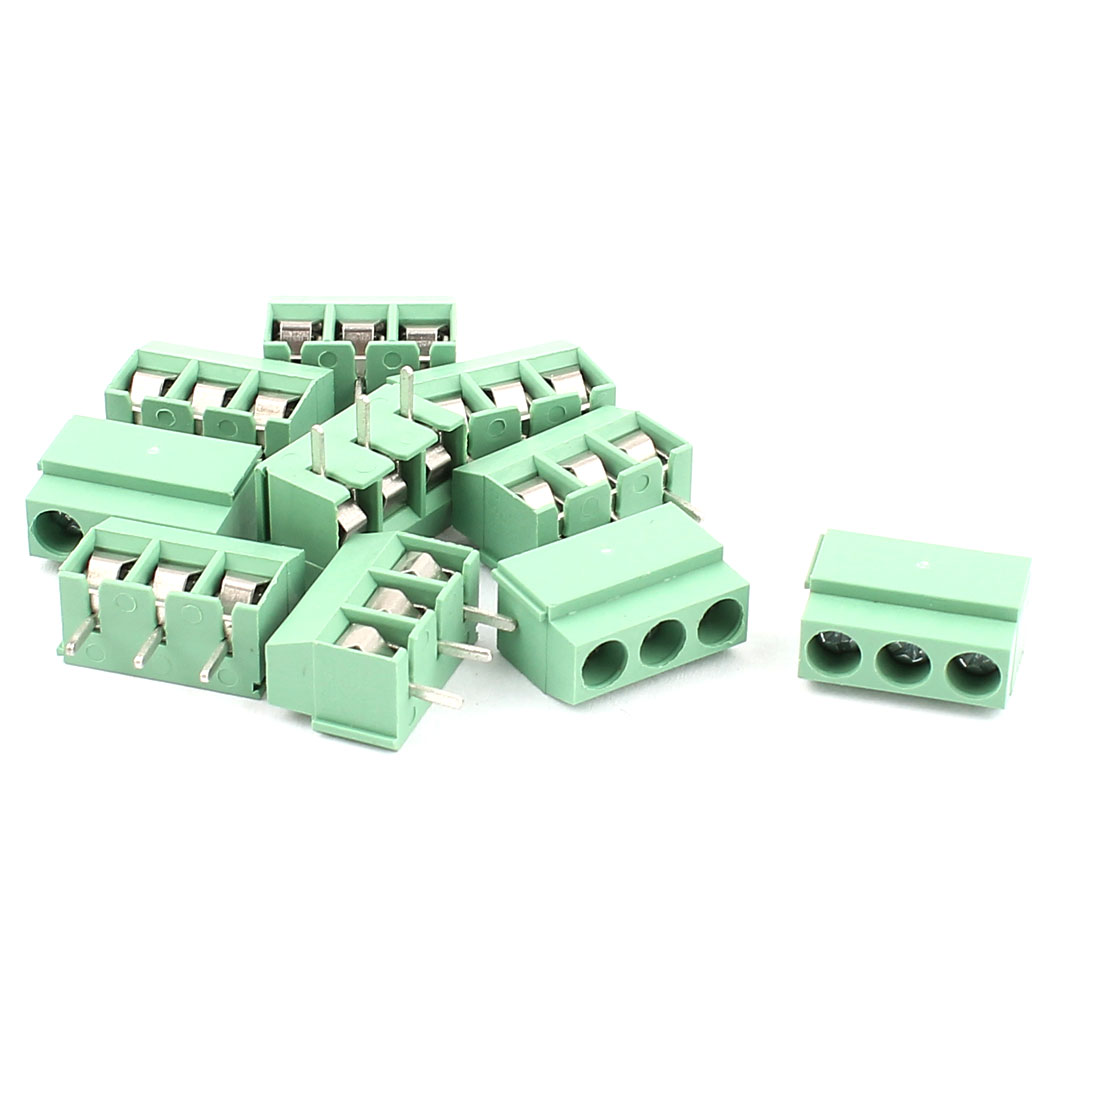 10 Pcs 5mm Pitch Screw Terminal Block Connector Green for PCB Mounting